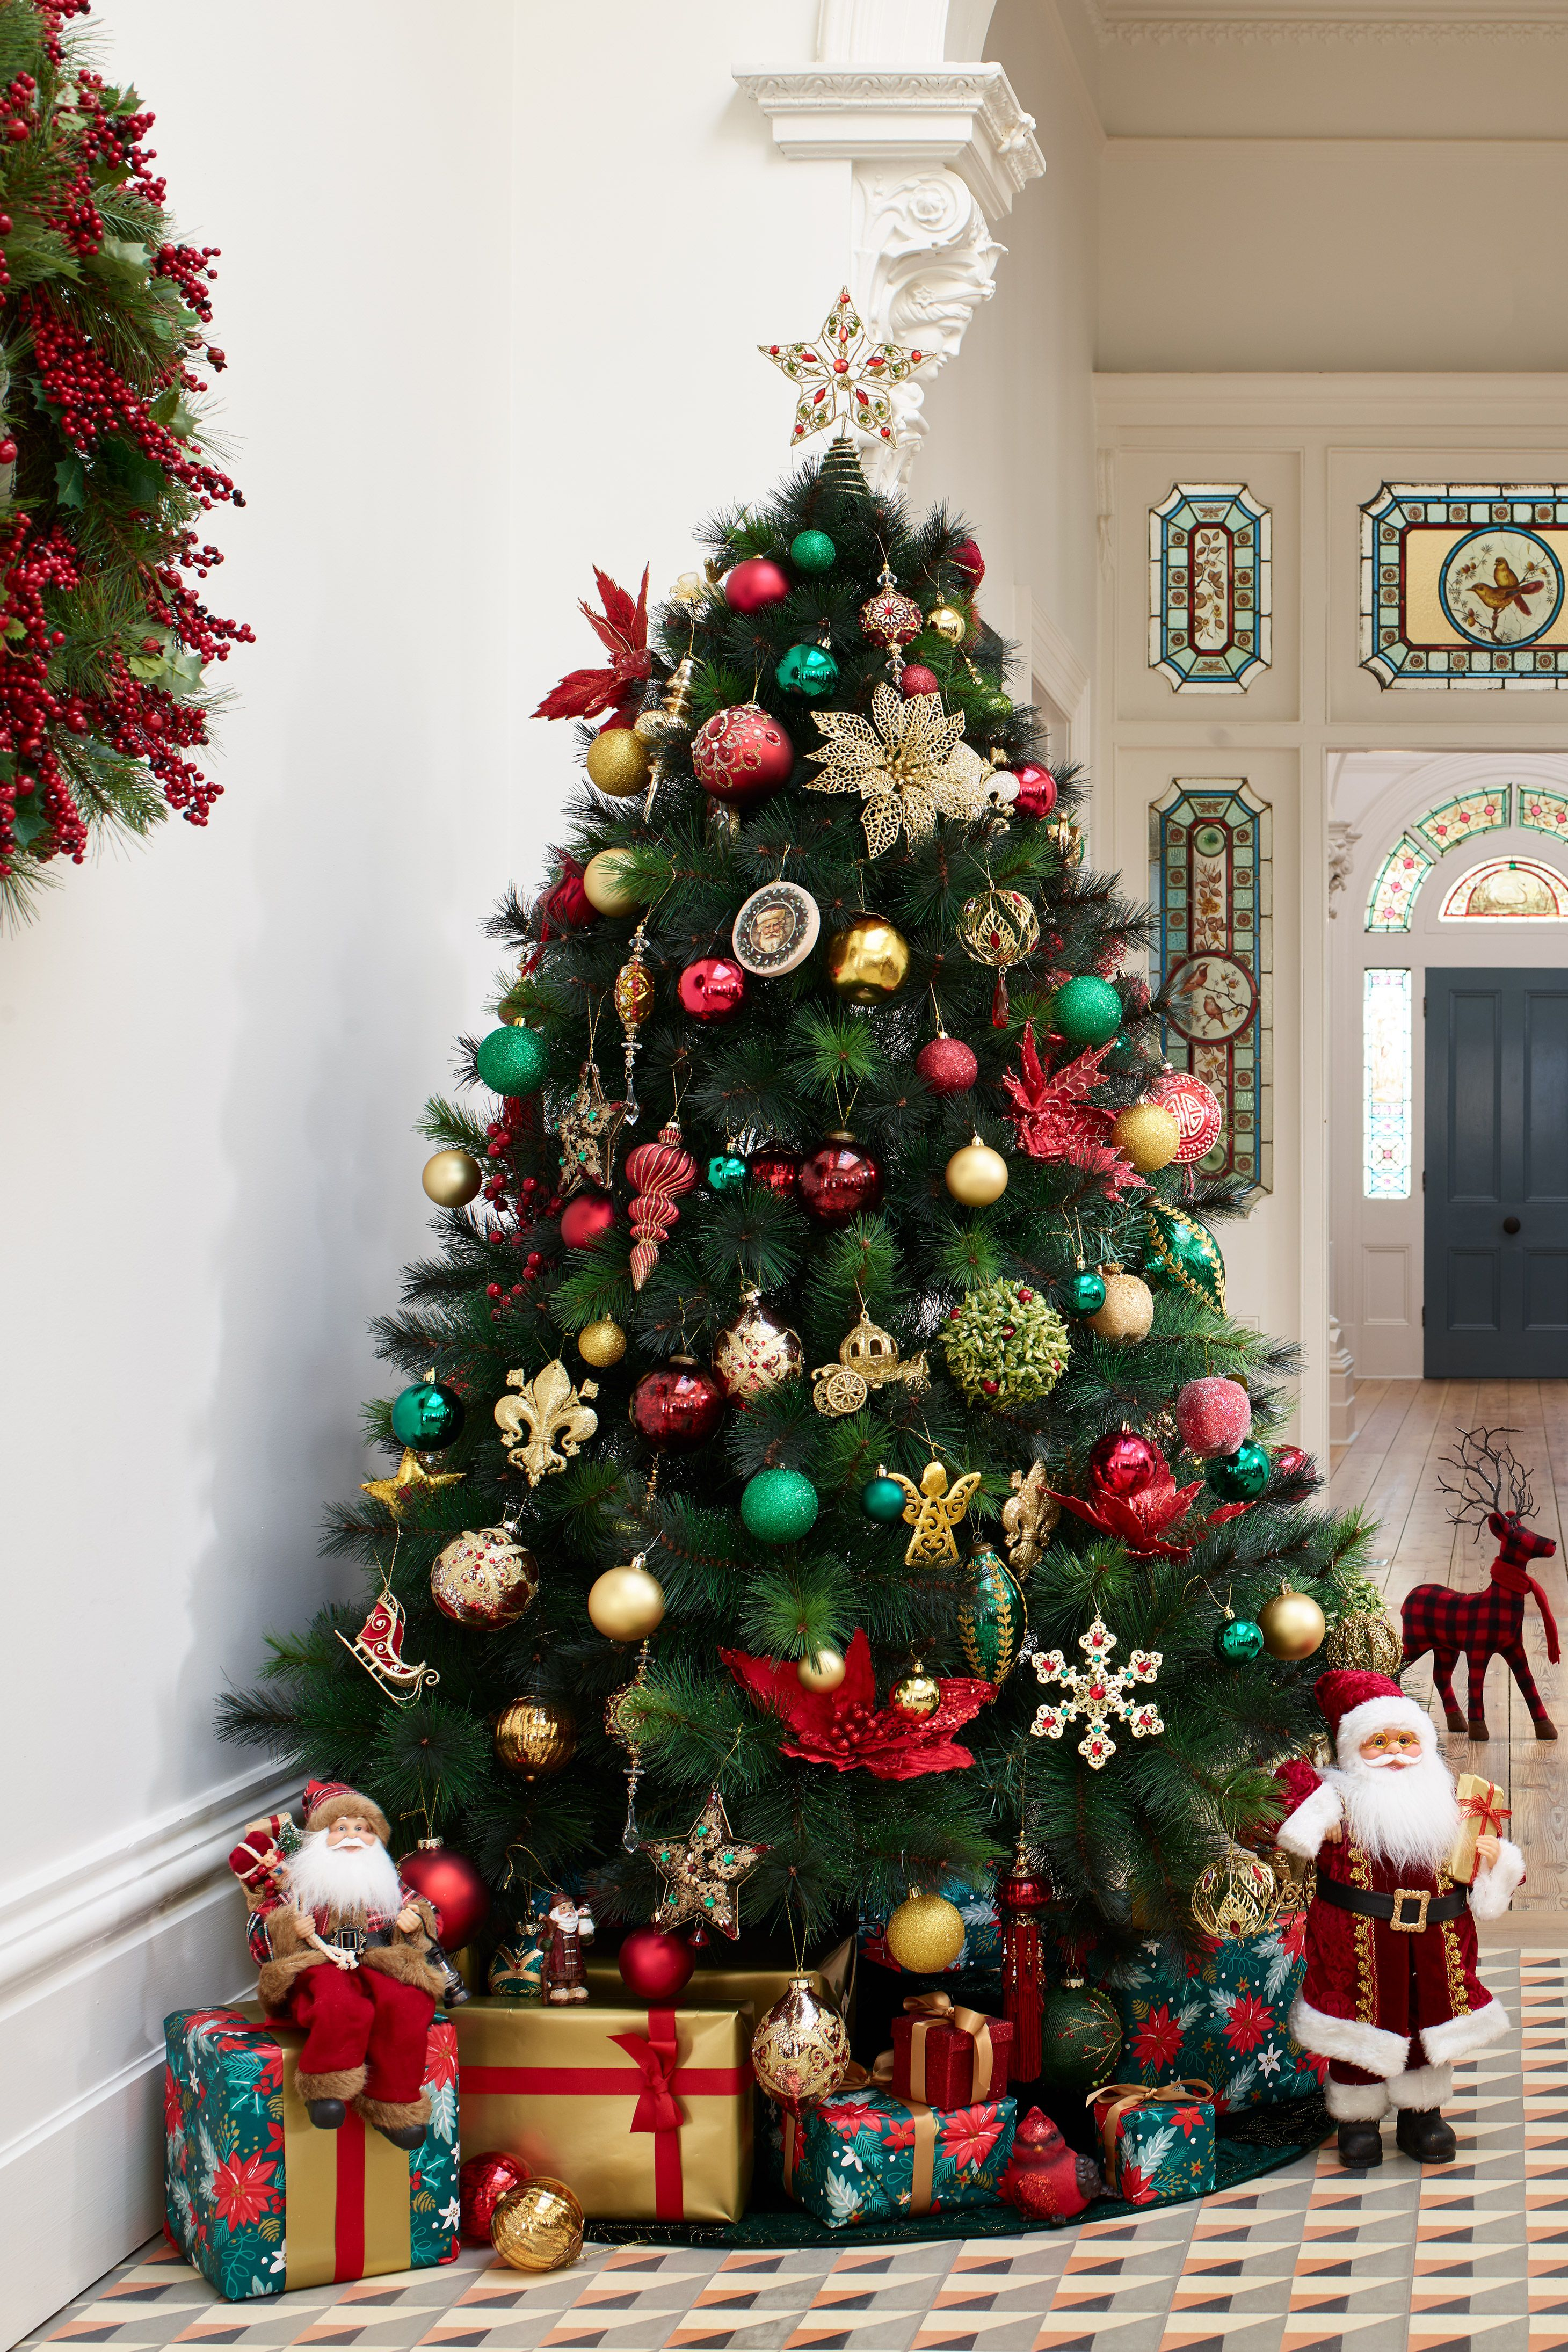 Heirloom Collection Christmas Trim Available At Myer Arvore De Natal Ideias Para O Natal Natal